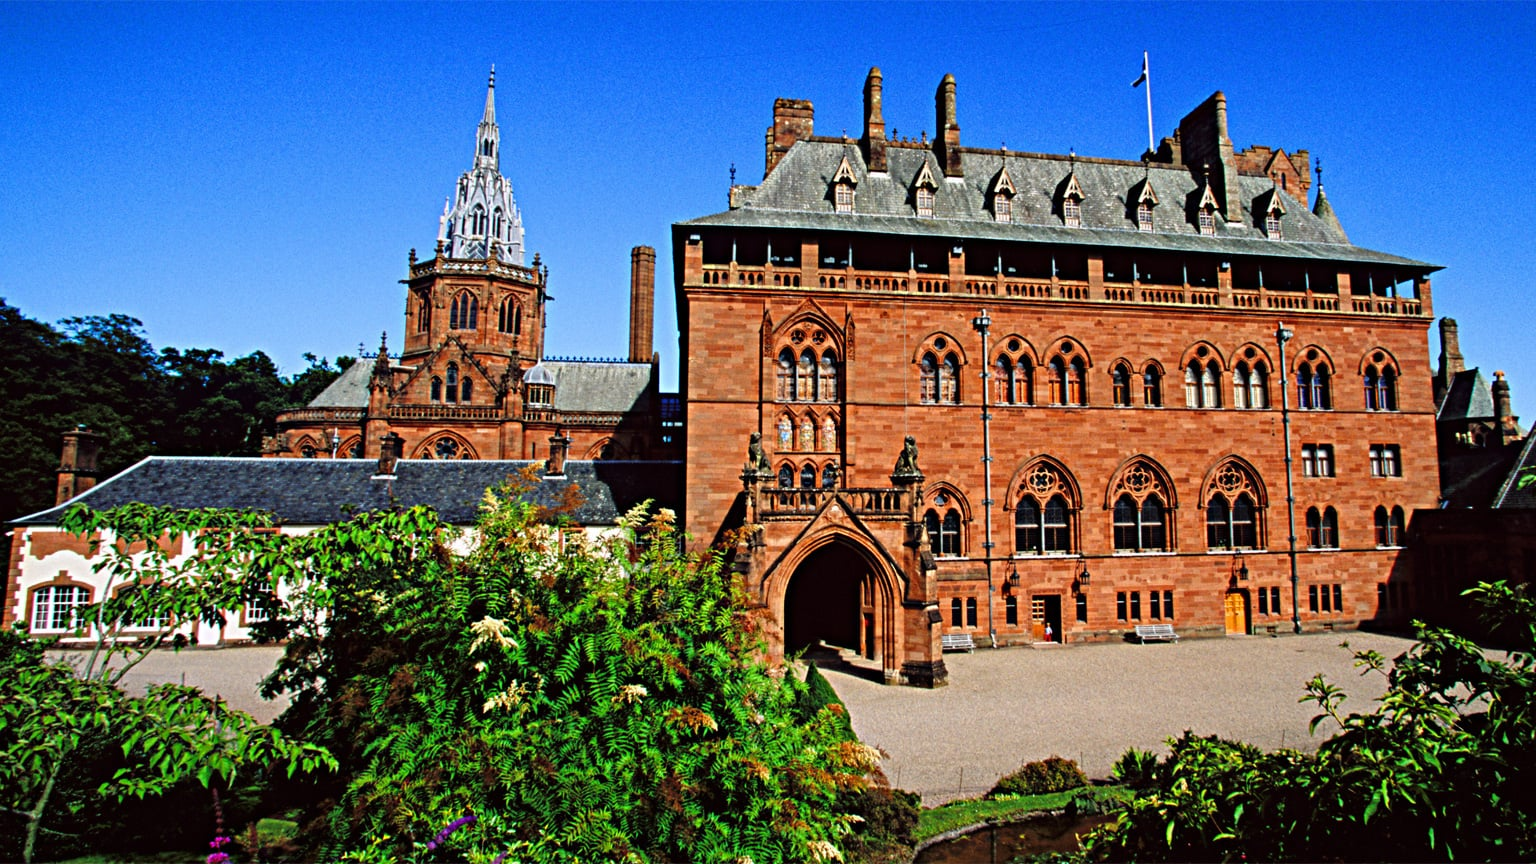 2. Mount Stuart, Argyll - Reduced price entry with National Art Pass